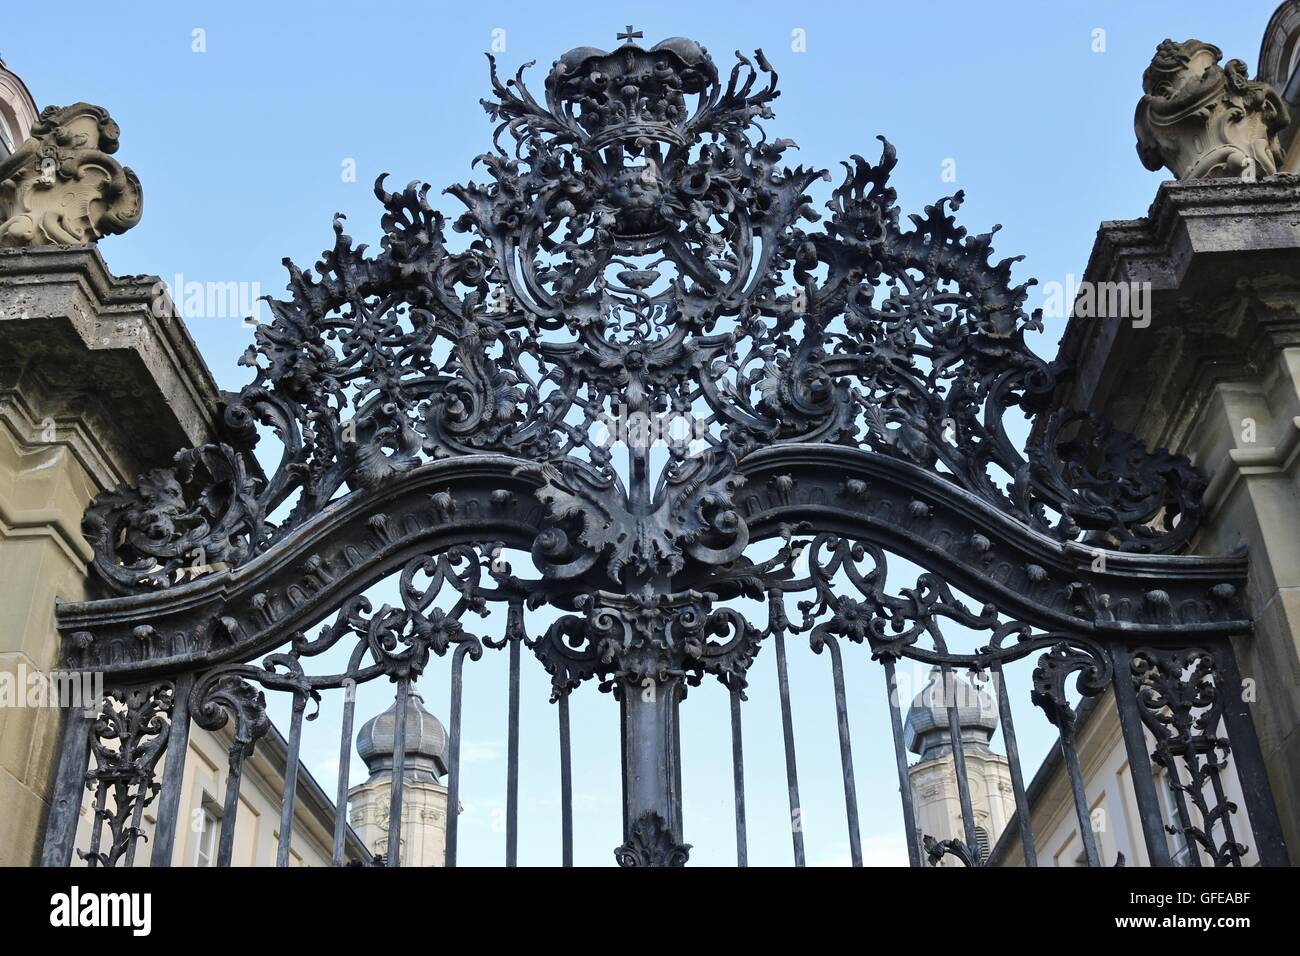 Wrought Iron Gate Of The Baroque Palace Werneck In Werneck